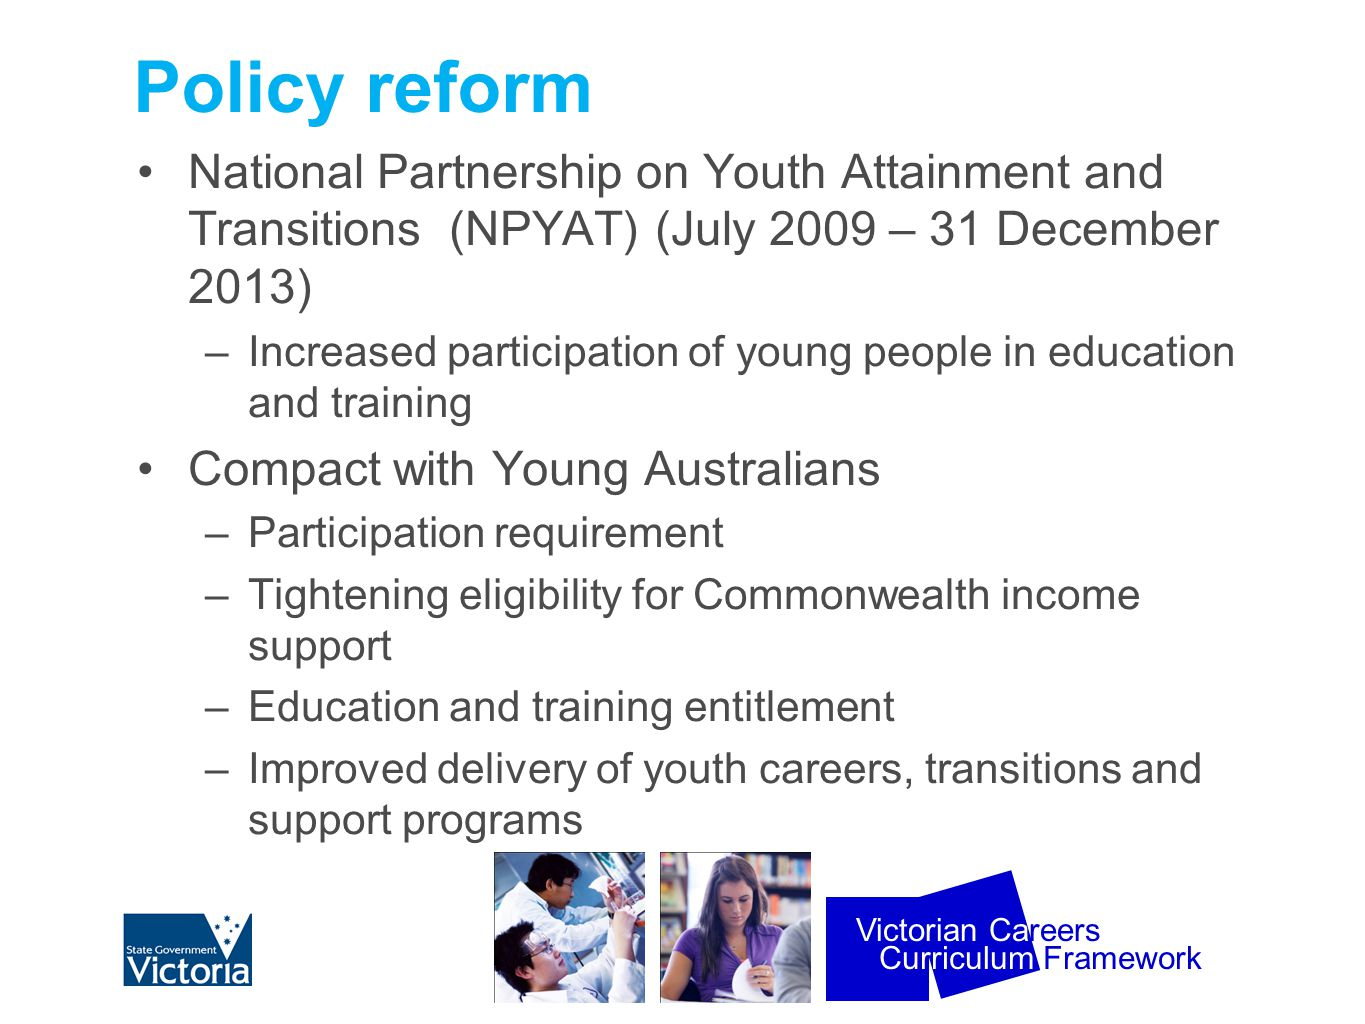 Curriculum Framework Victorian Careers Policy reform National Partnership on Youth Attainment and Transitions (NPYAT) (July 2009 – 31 December 2013) –